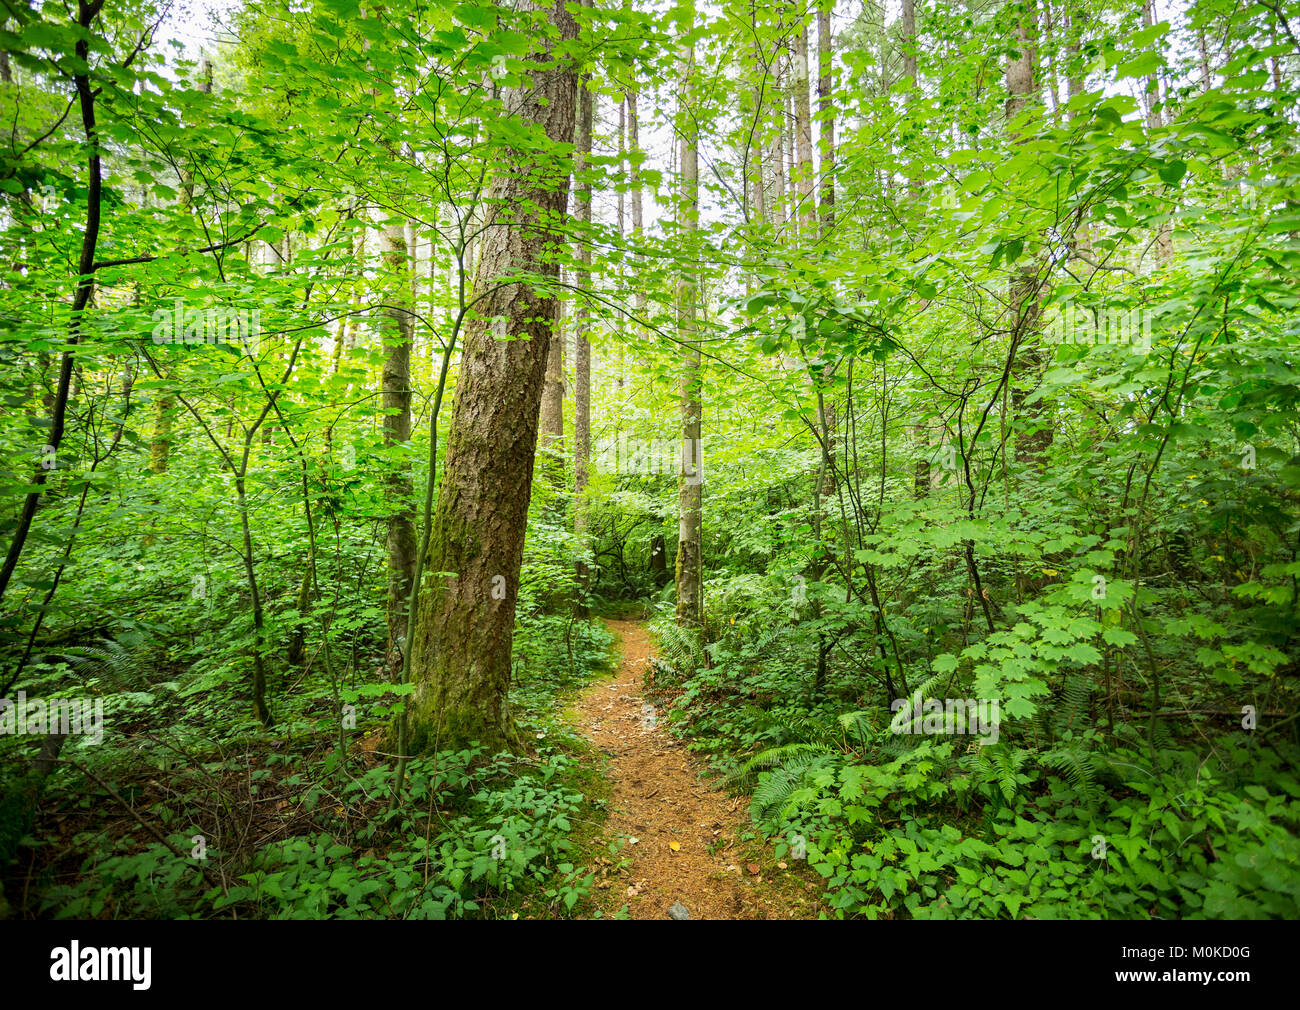 Green Timbers Forest; Surrey, British Columbia, Canada - Stock Image